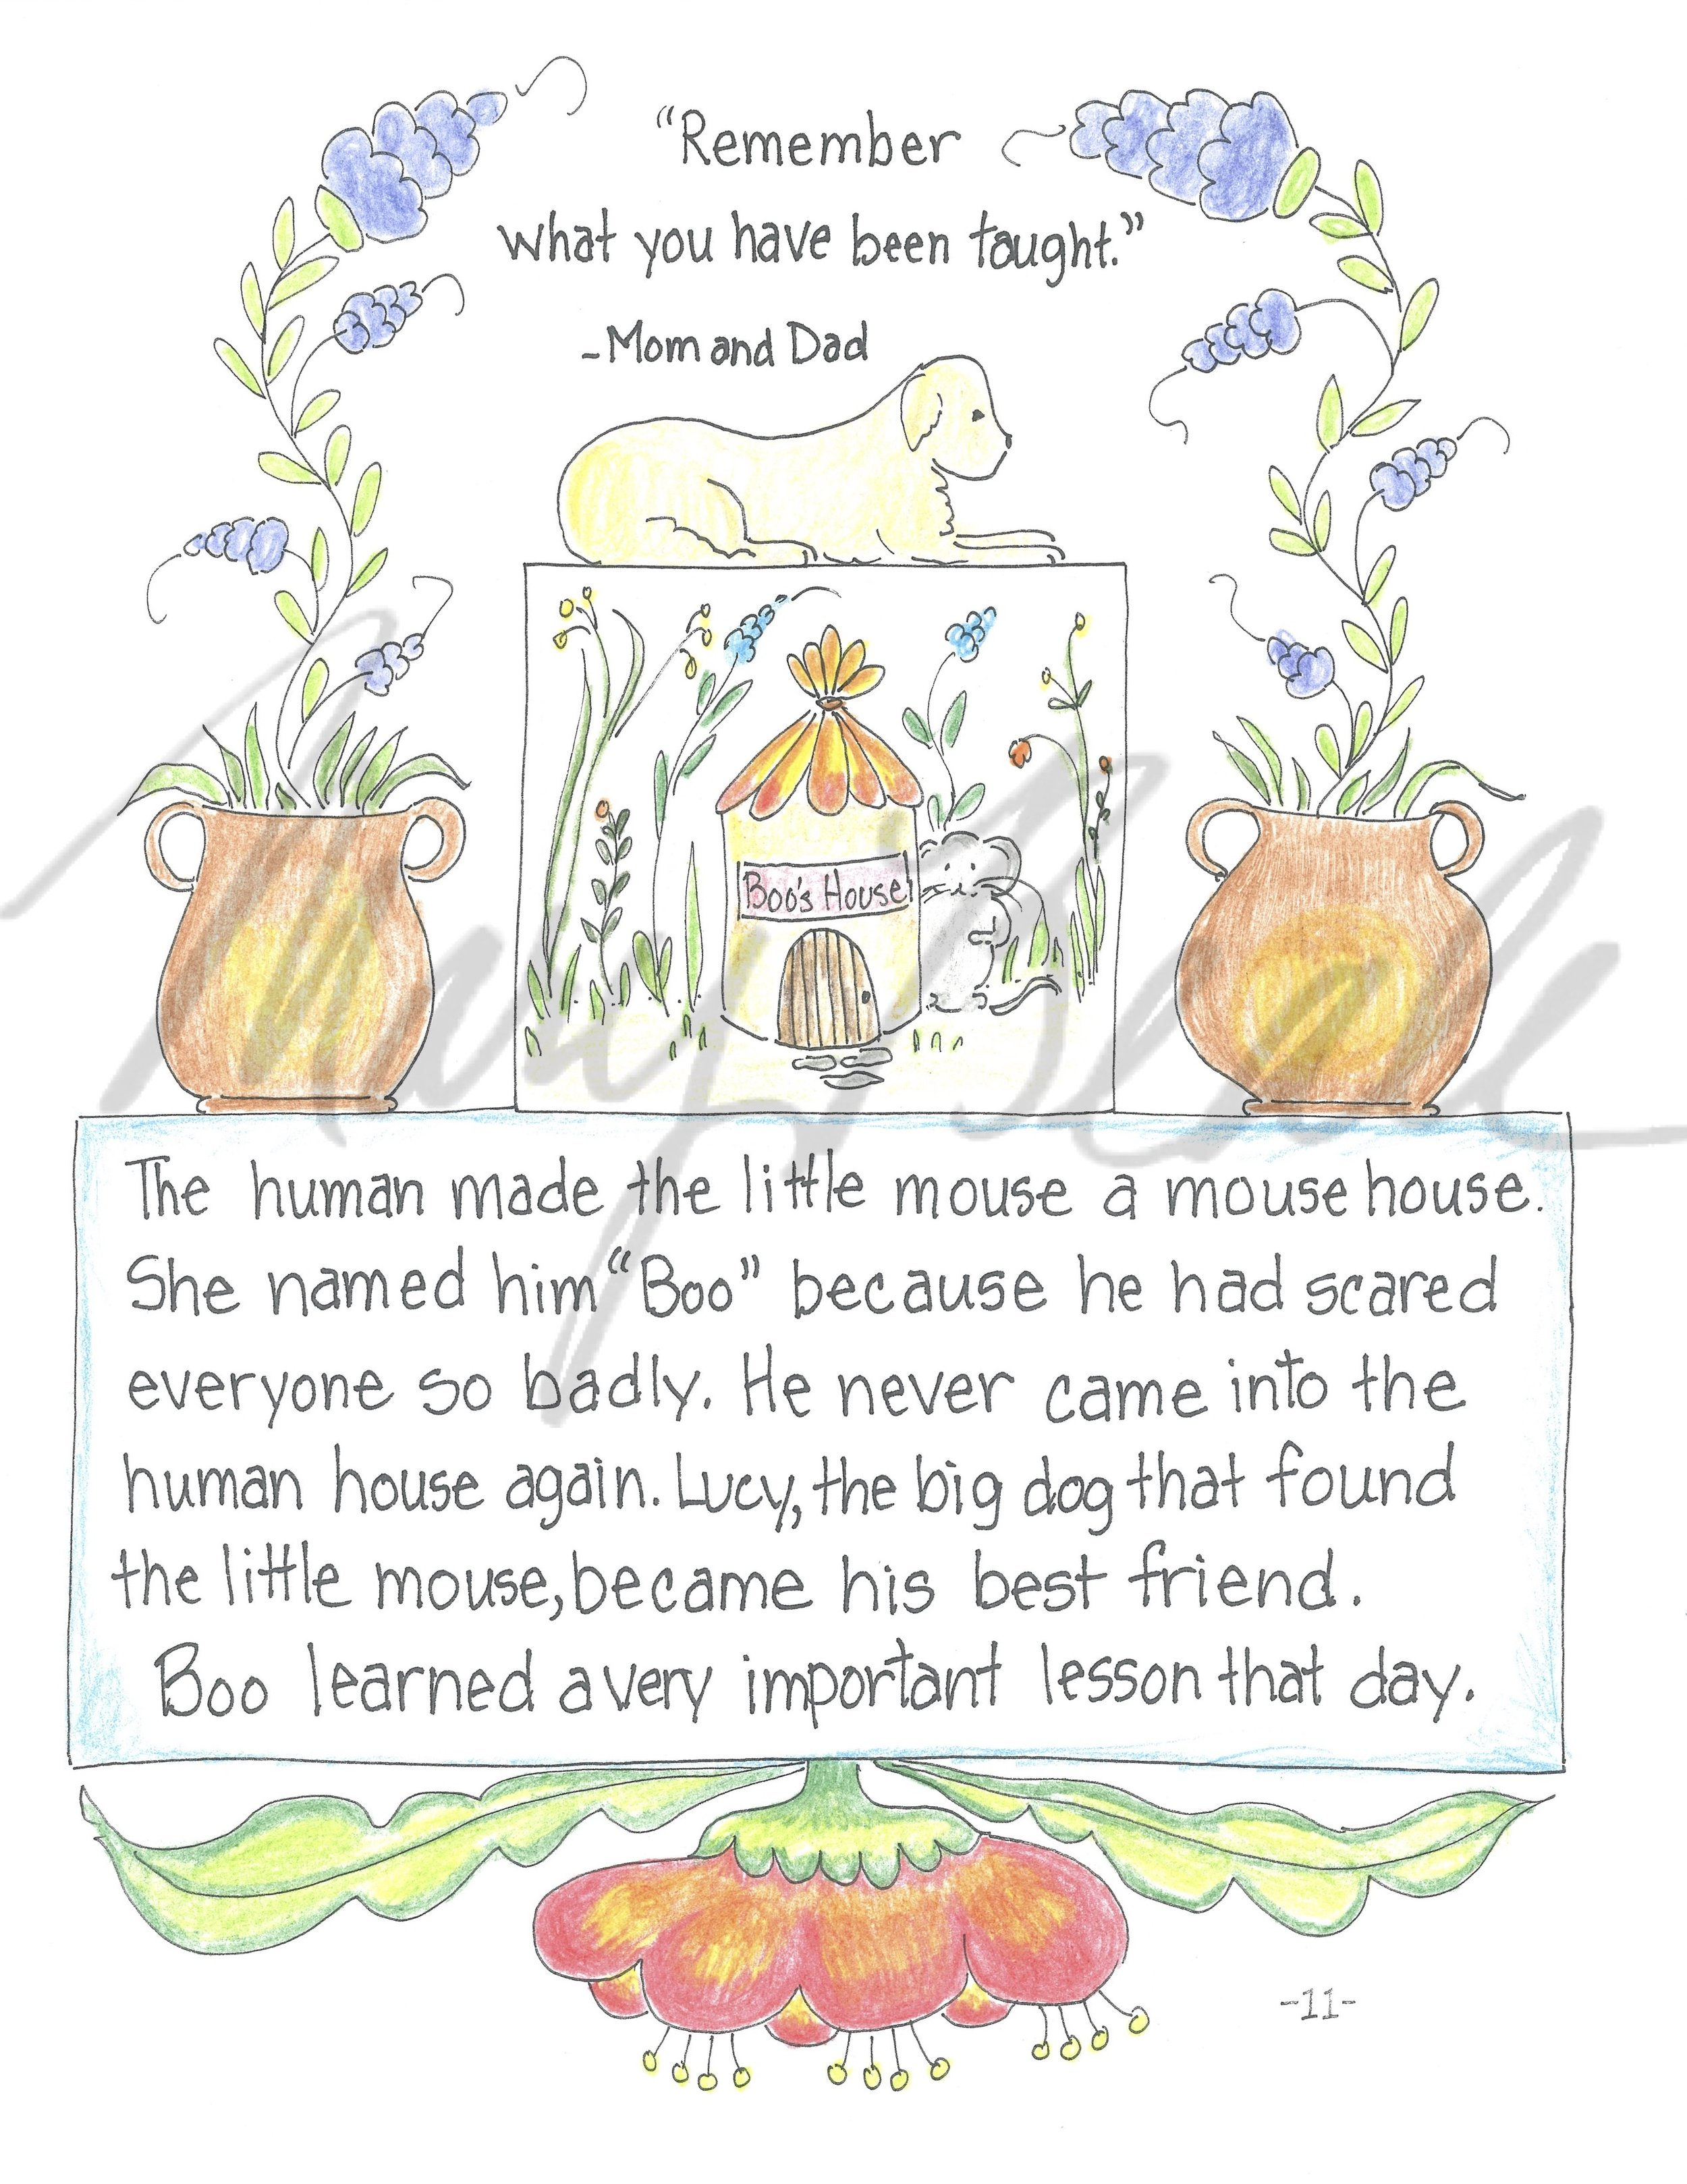 TheMouseHouse-Color (With Watermark)-page12.jpg